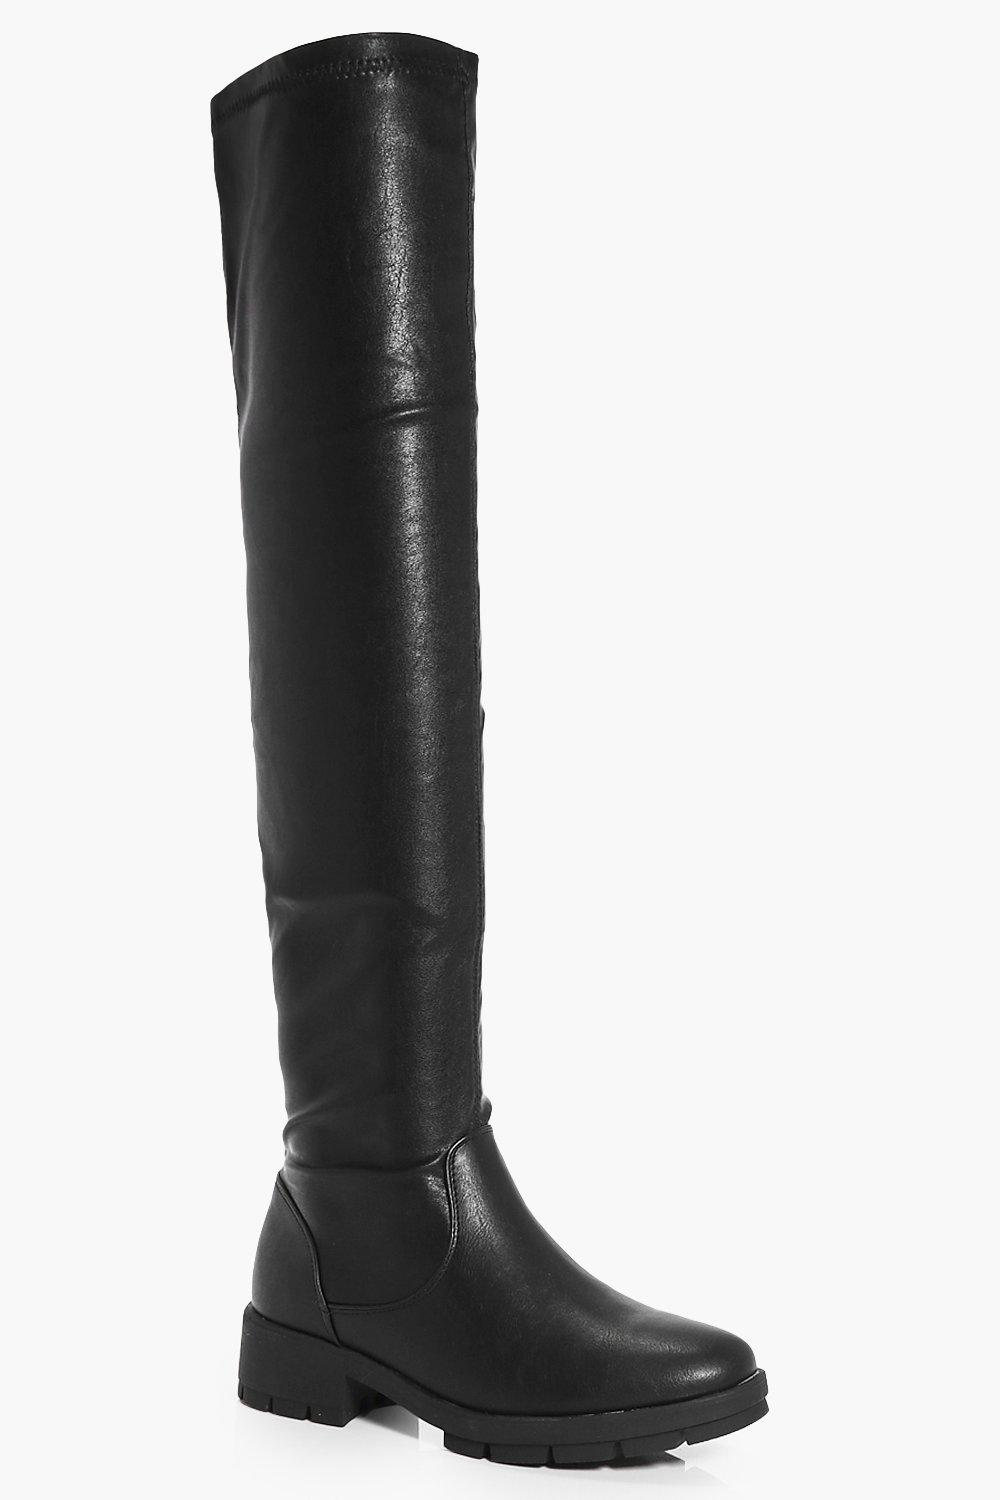 Jemima Knee High Cleated Boot